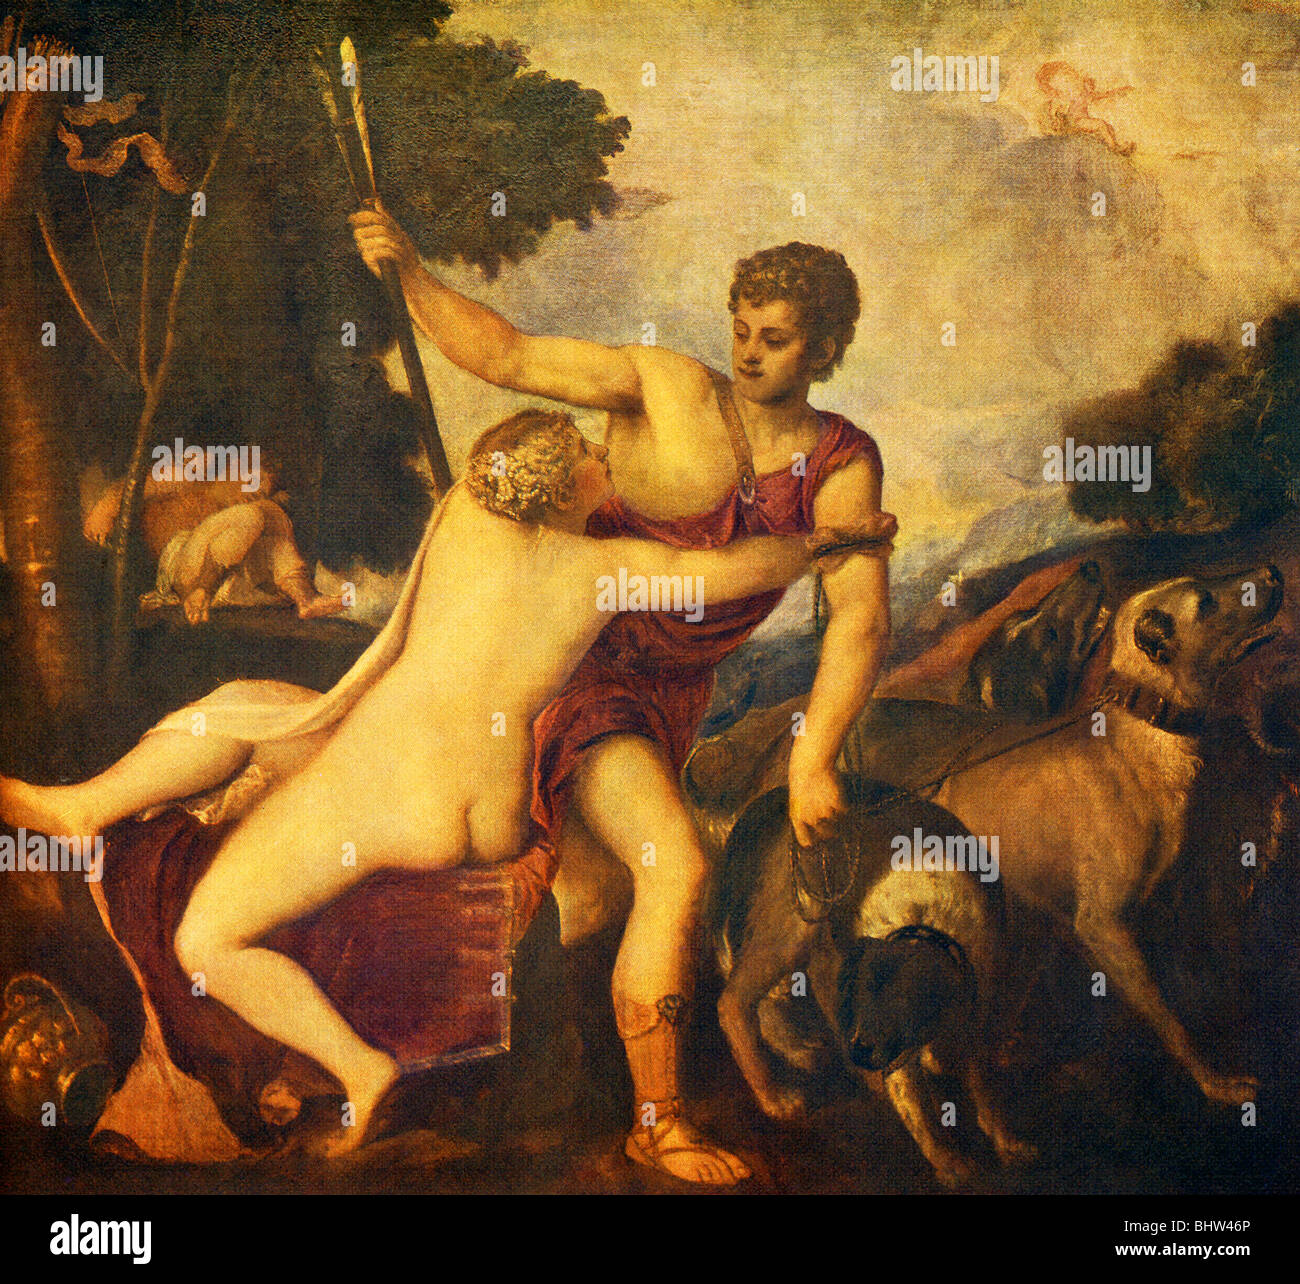 In Roman mythology, Venus was pricked by son Cupid's arrow and fell in love with Adonis, whom she warned not - Stock Image